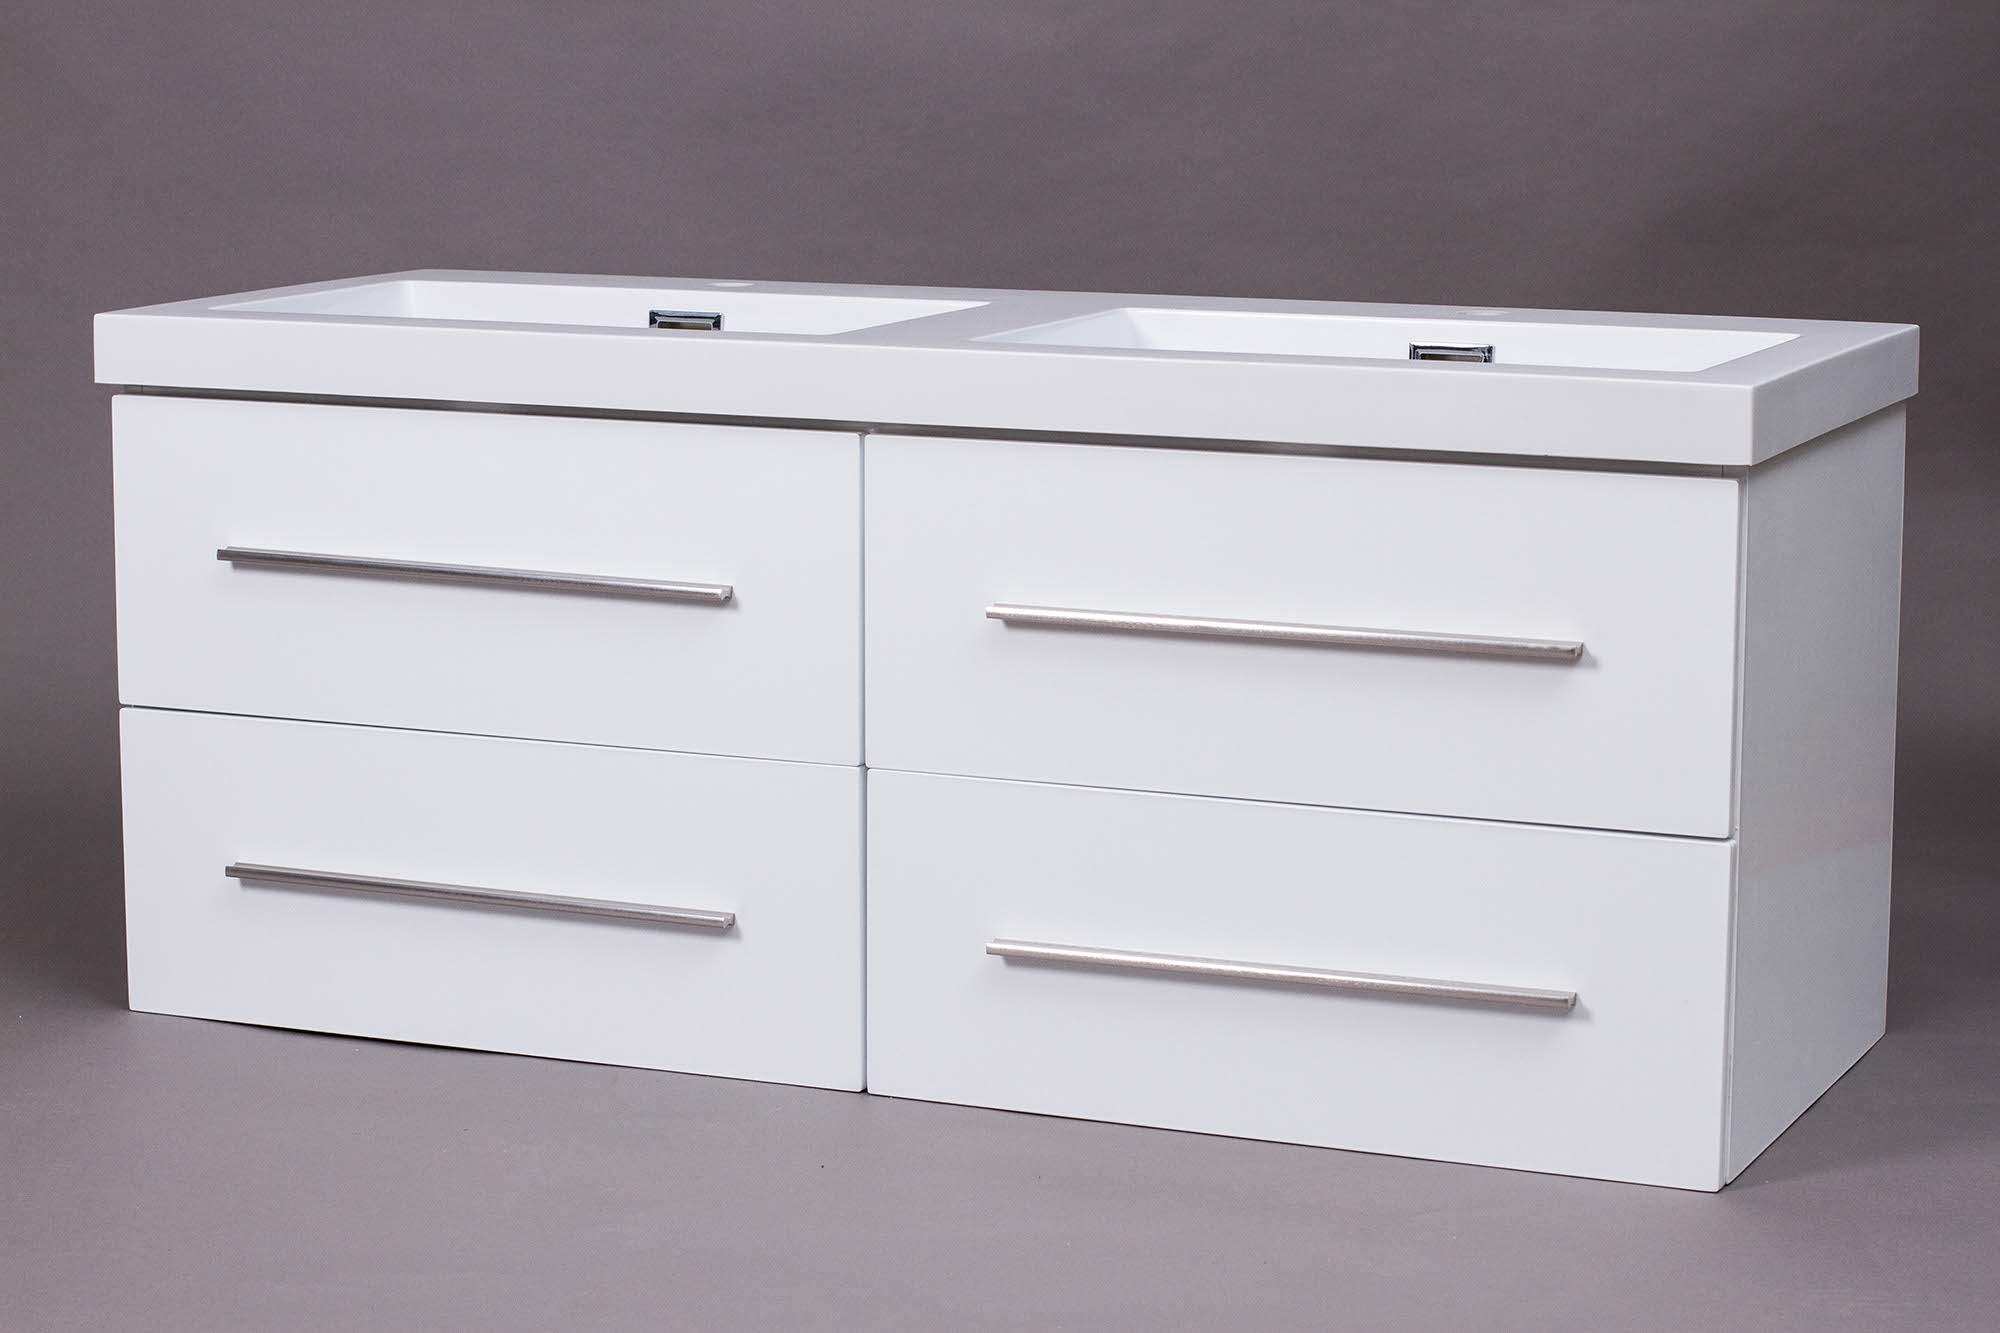 Victoria 1200 4 Drawers With Handles